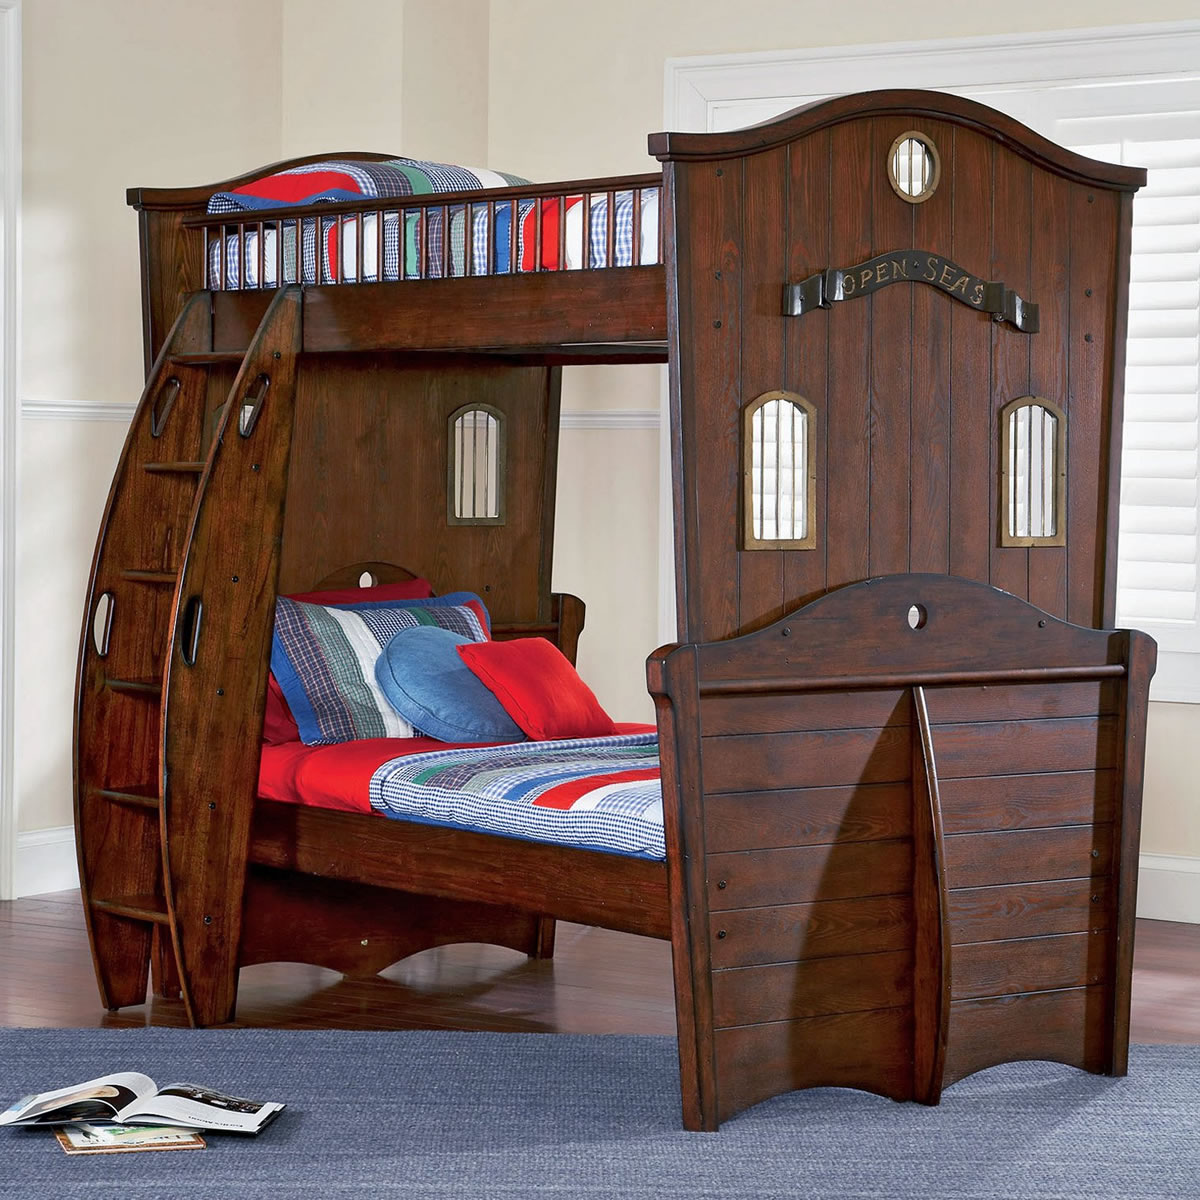 Little Tikes Pirate Bed | Little Tikes Beds | Toddler Bed Little Tikes